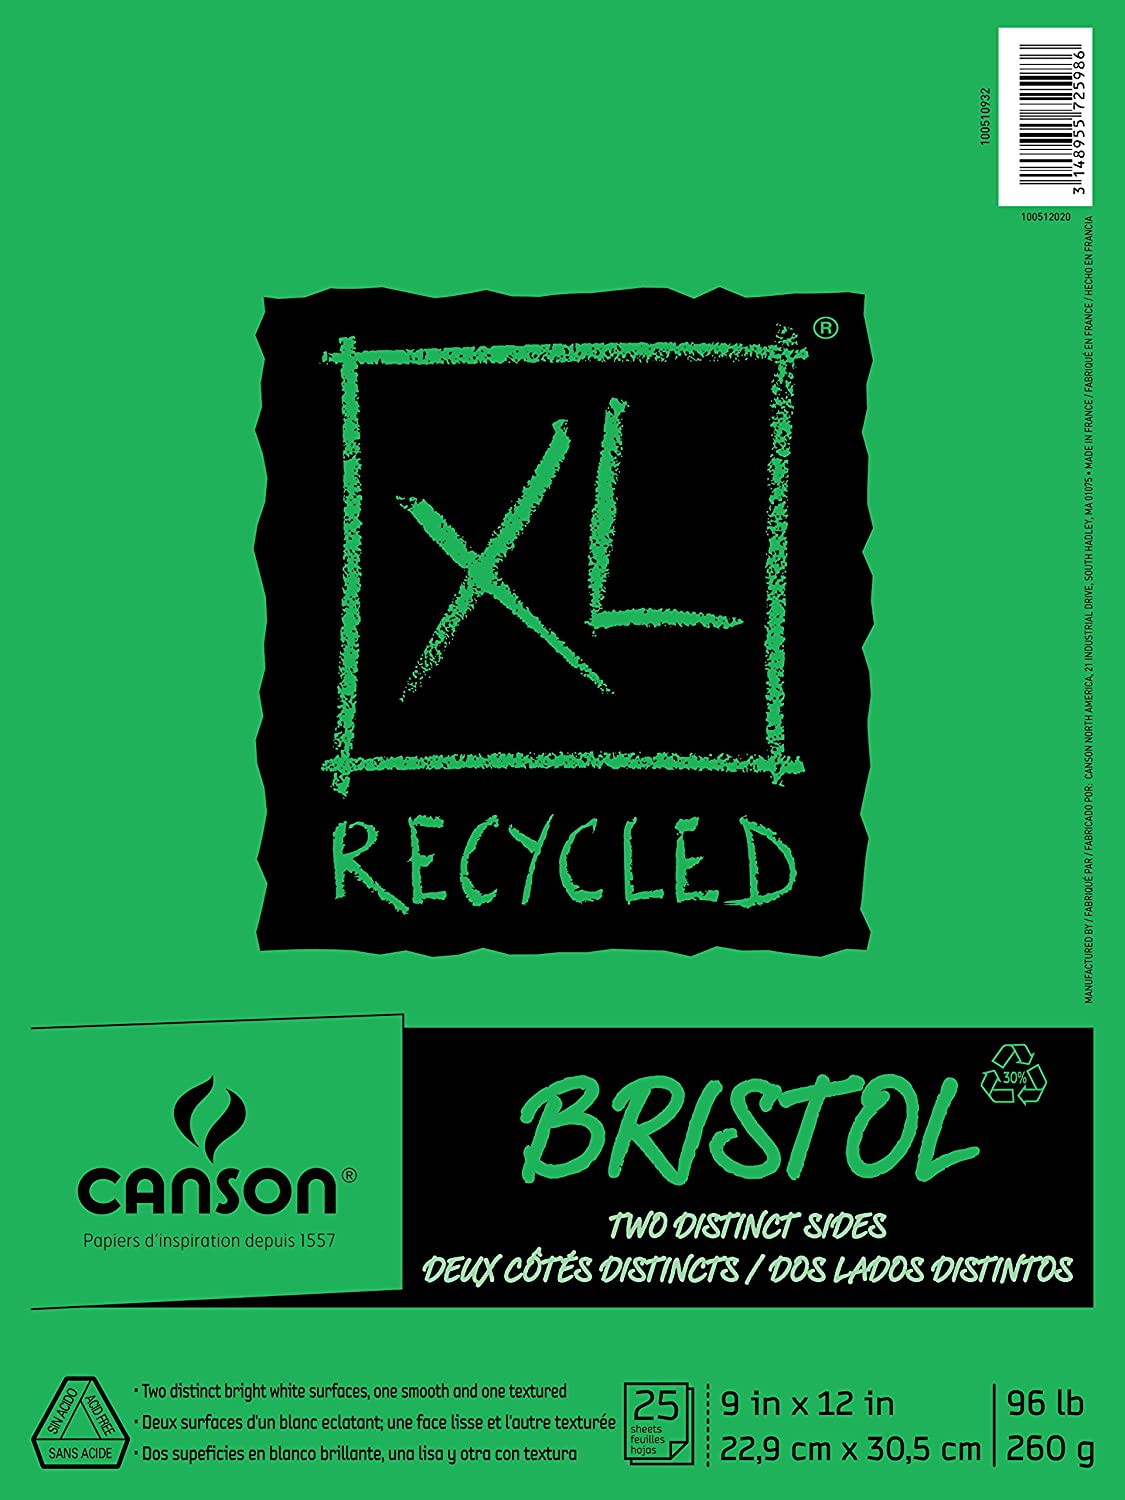 Canson XL Series Recycled Bristol Paper Pad, Dual Sided Smooth and Vellum for Pencil, Marker or Ink, Fold Over, 96 Pound, 19 x 24 In, White, 25 Sheets Canson Inc. 100510935